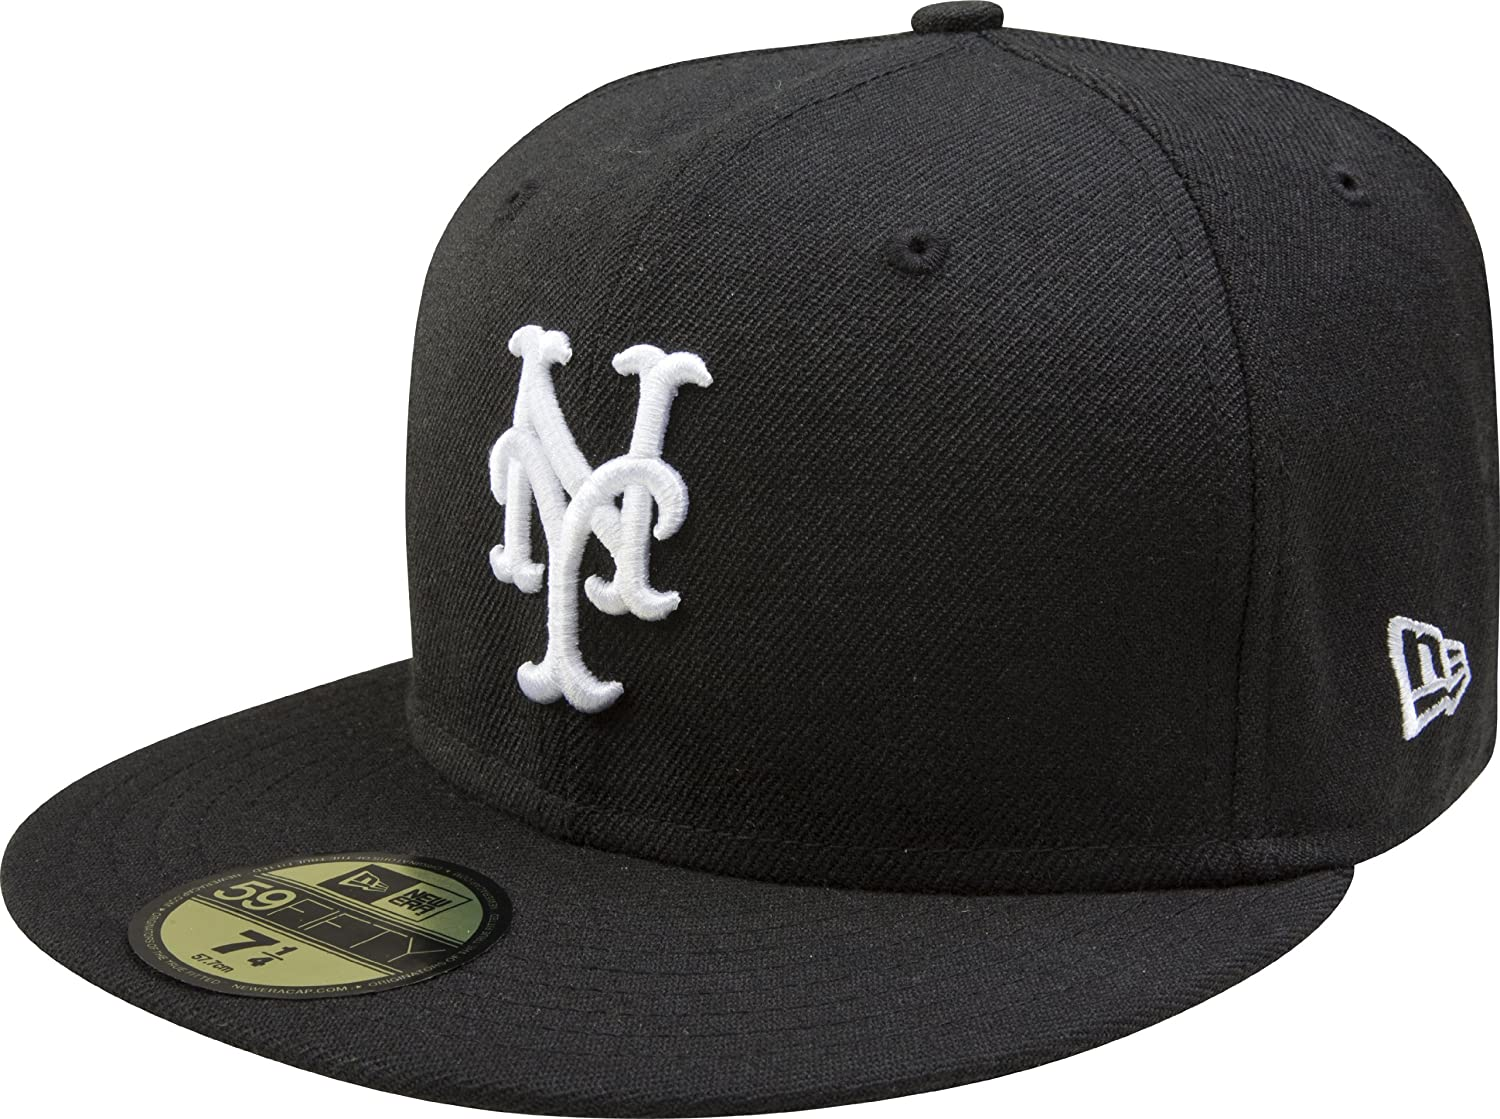 905e56b7e59 Amazon.com   MLB New York Mets Black with White 59FIFTY Fitted Cap   Sports  Fan Baseball Caps   Sports   Outdoors